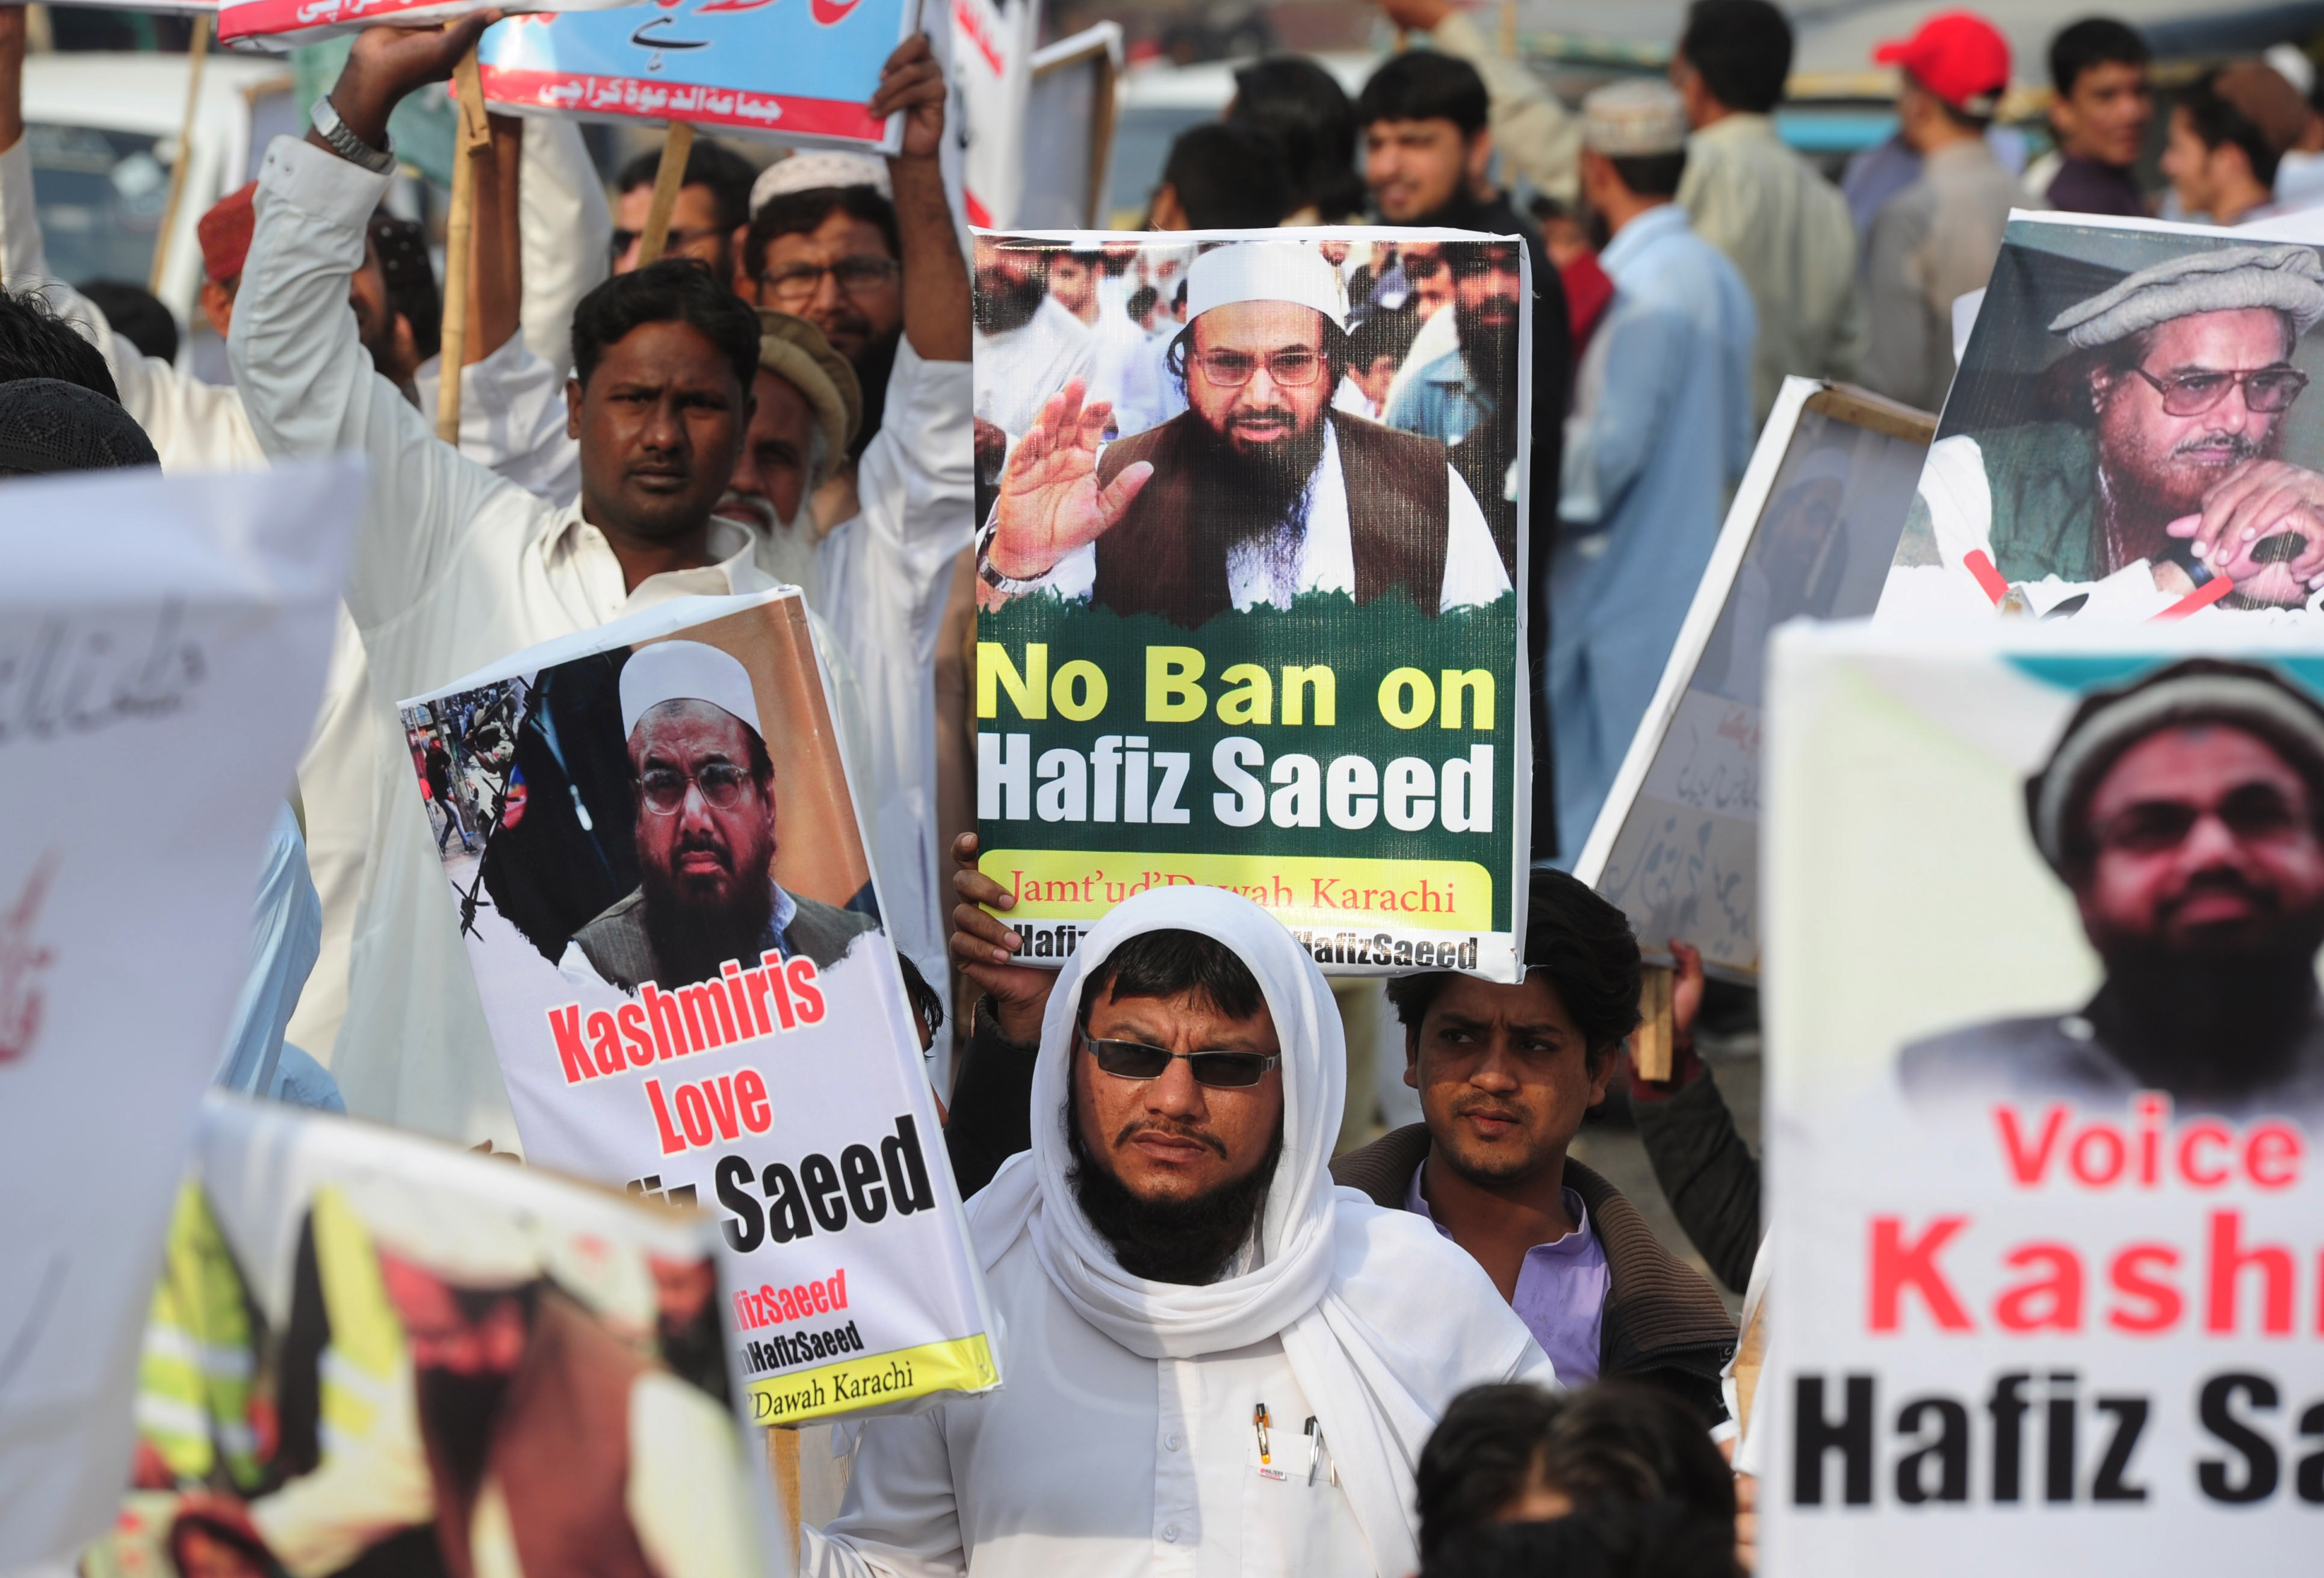 Even if it does not translate into votes, Hafiz Saeed seems to enjoy a growing political cache. (Credit: Asif Hassan / AFP)